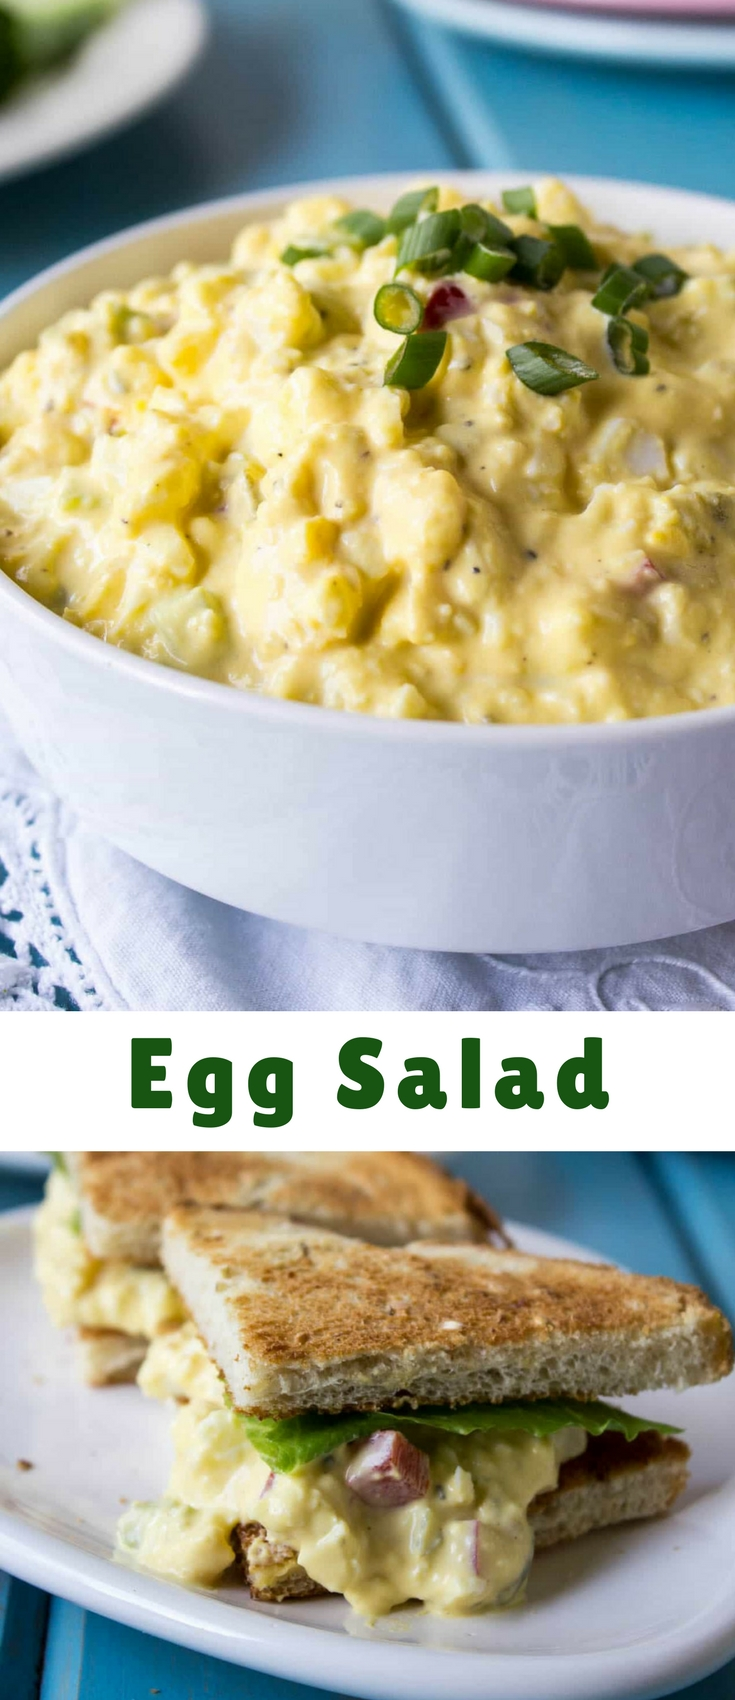 Egg salad is a great way to use up hard boiled eggs. Plus egg salad makes a great sandwich!